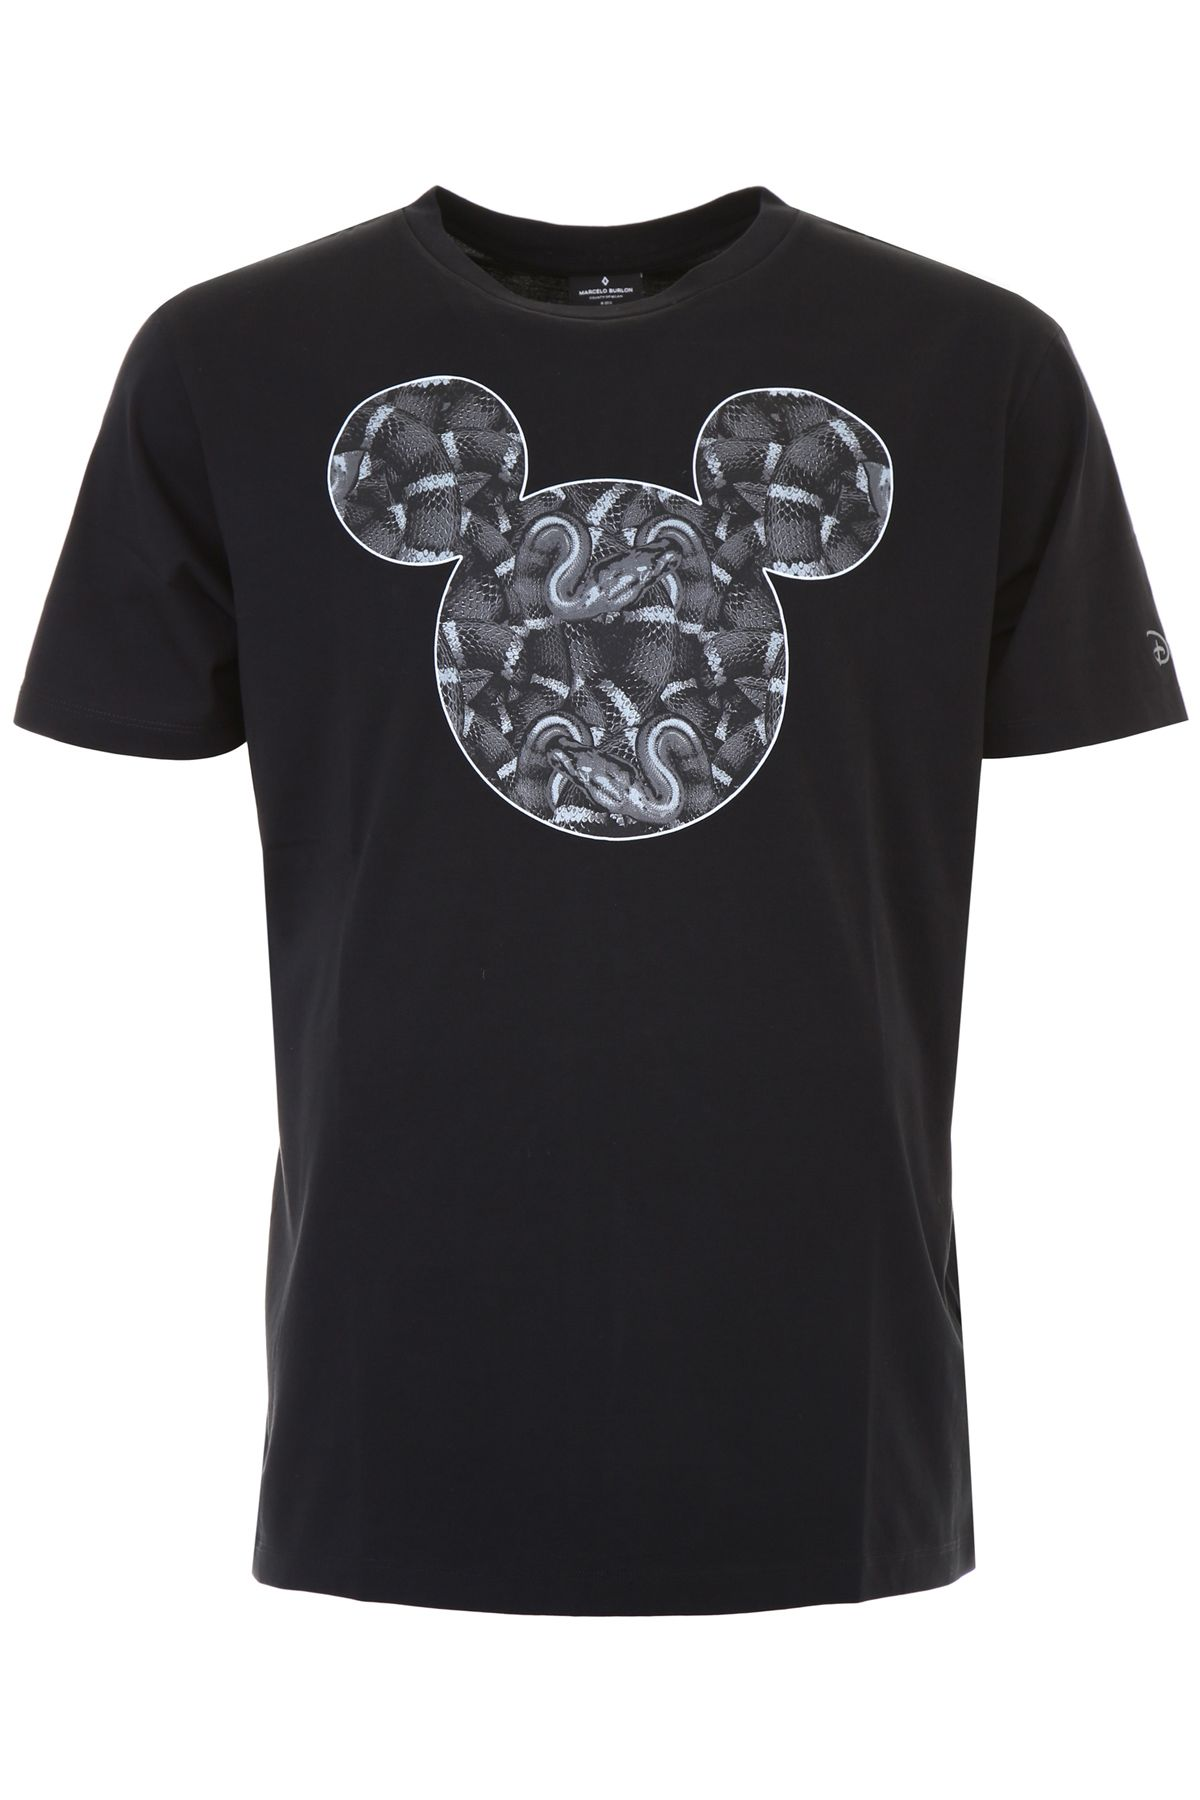 Mickey Mouse Snakes T-shirt